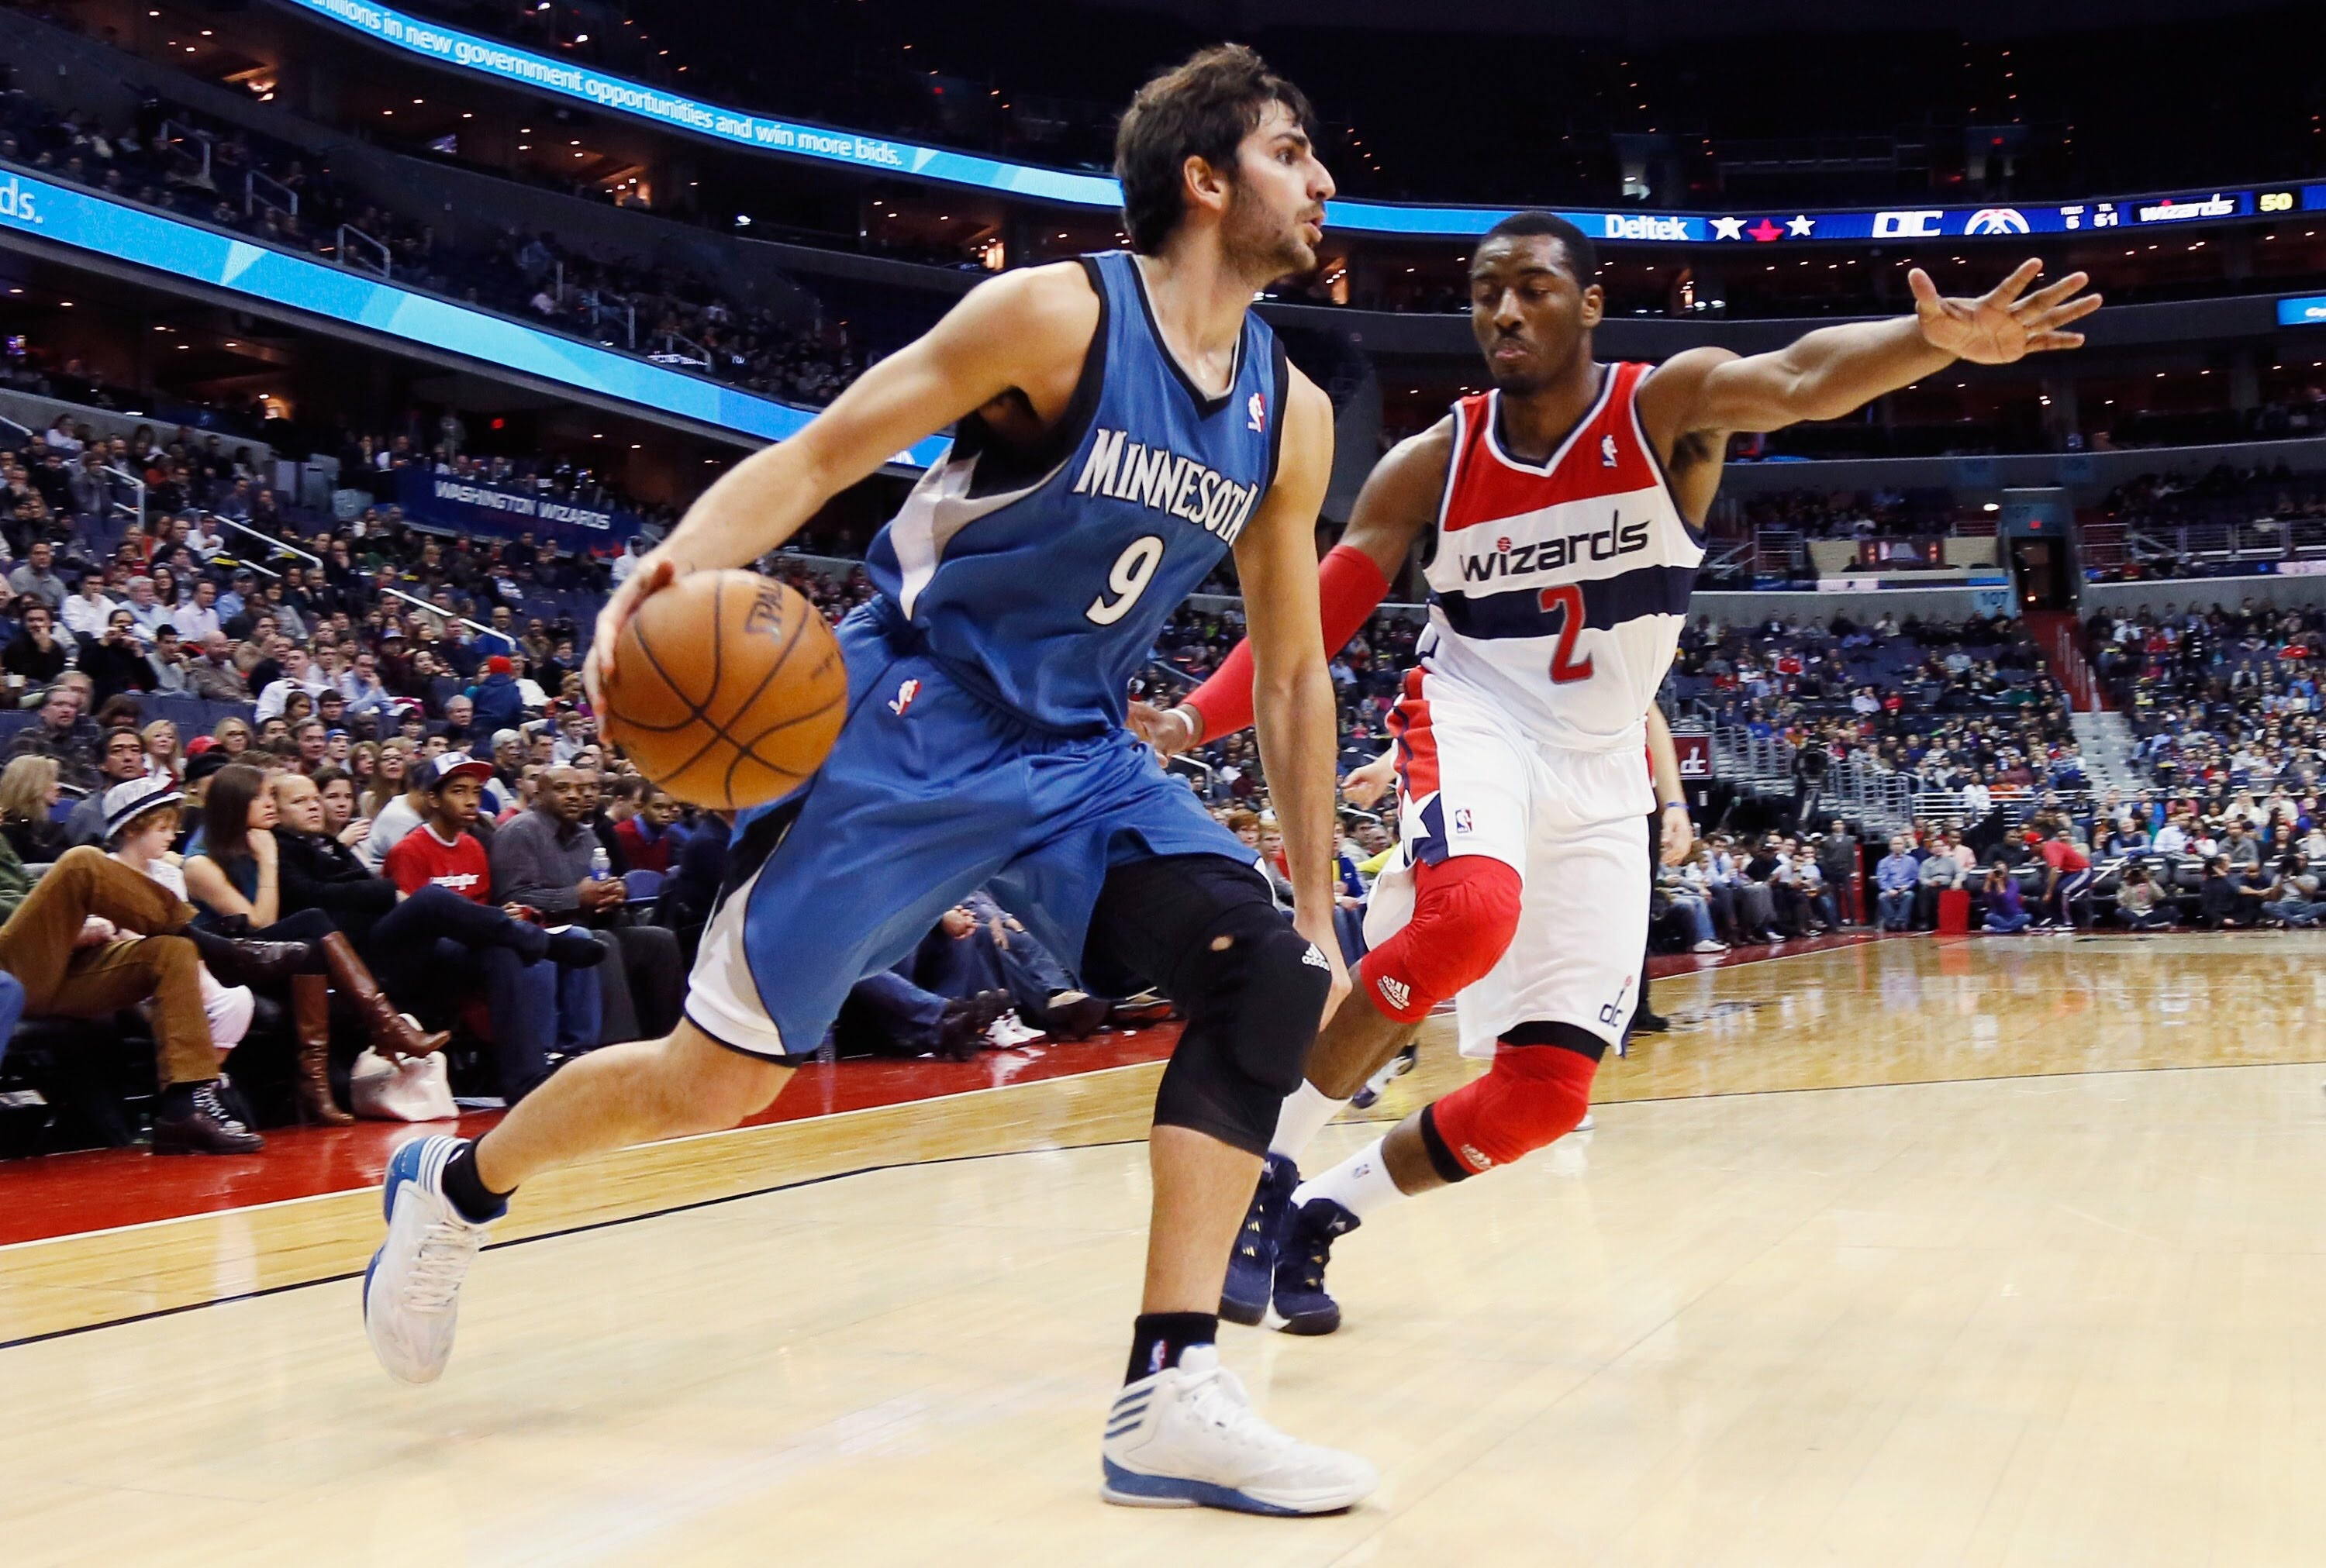 Game Preview: Timberwolves vs. Wizards